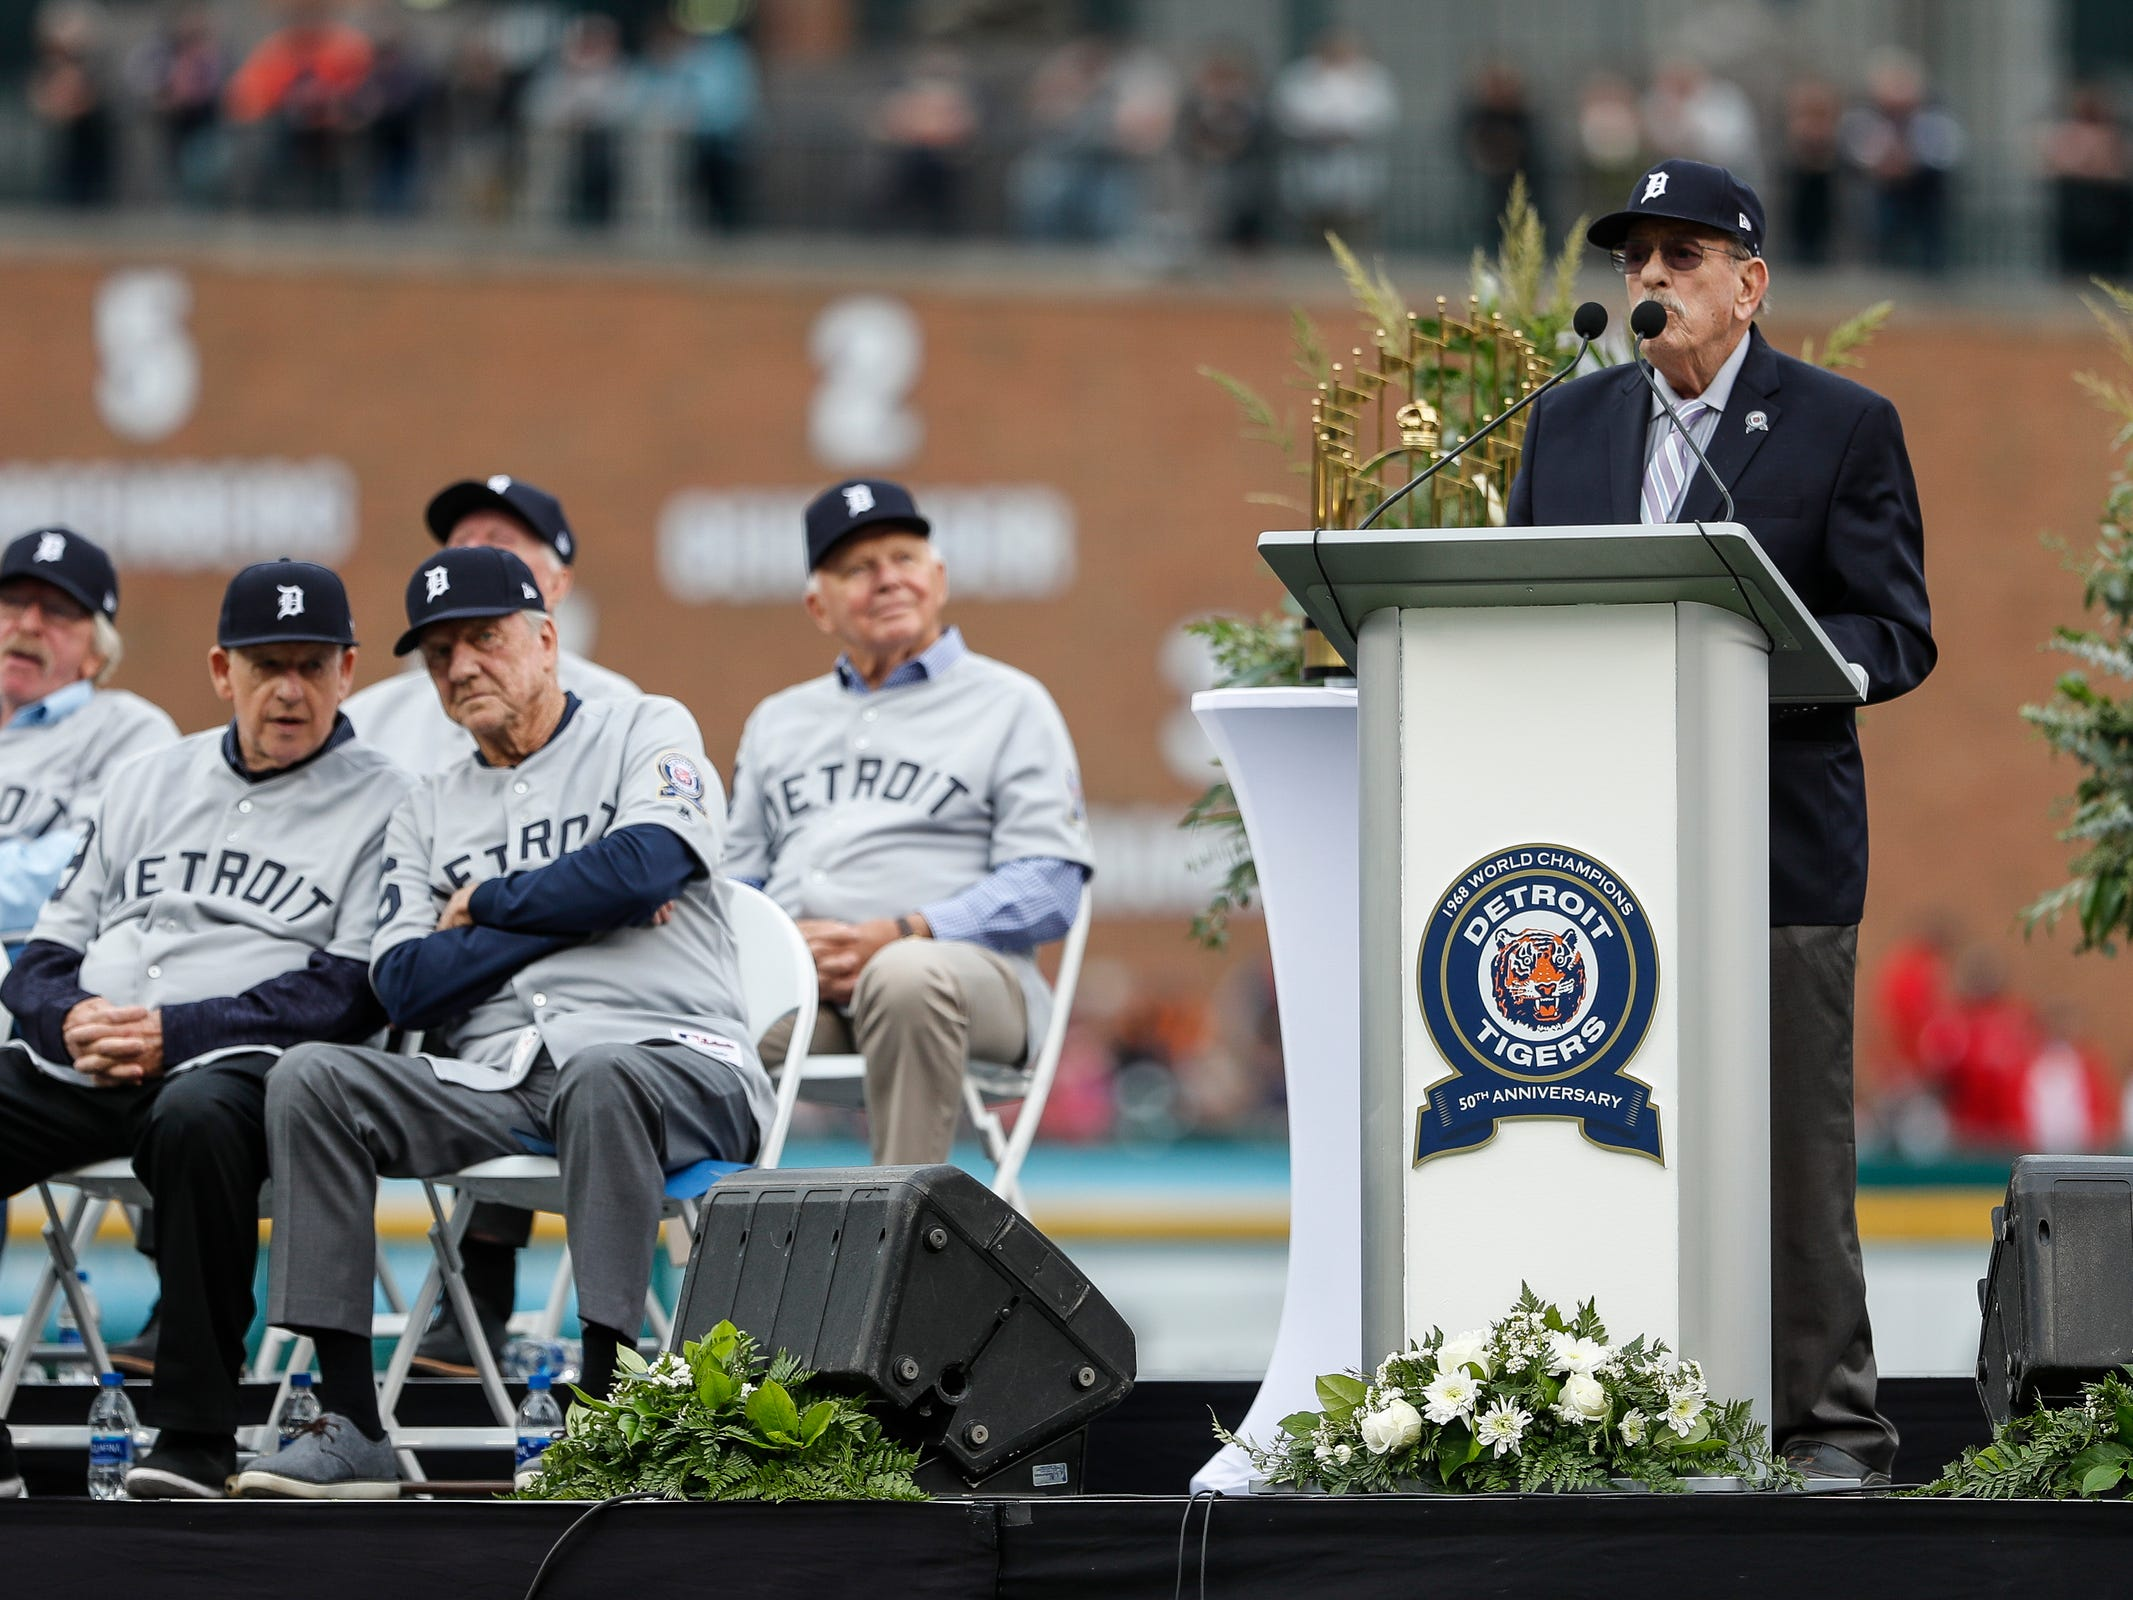 Sportscaster Ray Lane speaks during the Detroit Tigers celebration of the 50th anniversary of the 1968 World Series championship at Comerica Park in Detroit, Saturday, Sept. 8, 2018.